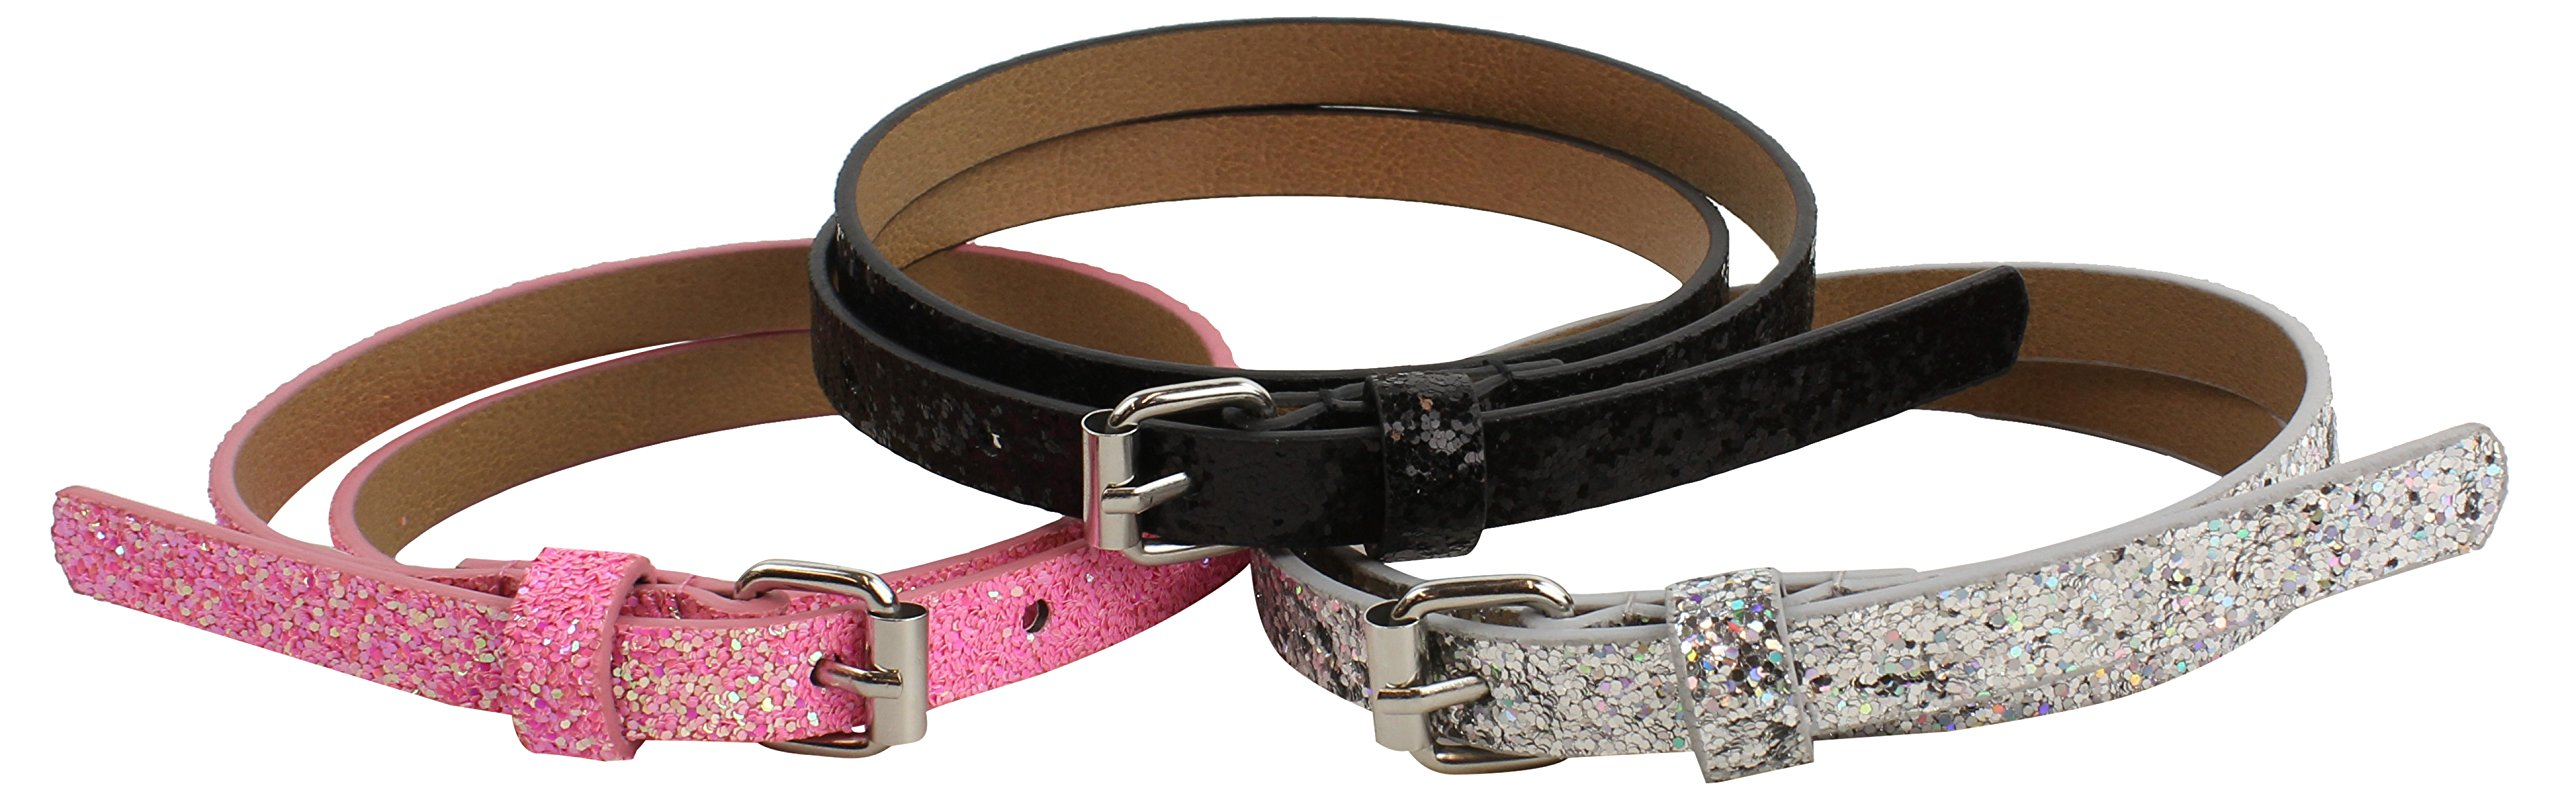 On the Verge Little Girls' 3 Pack Belts, Pink/Black/Silver, Small/Medium